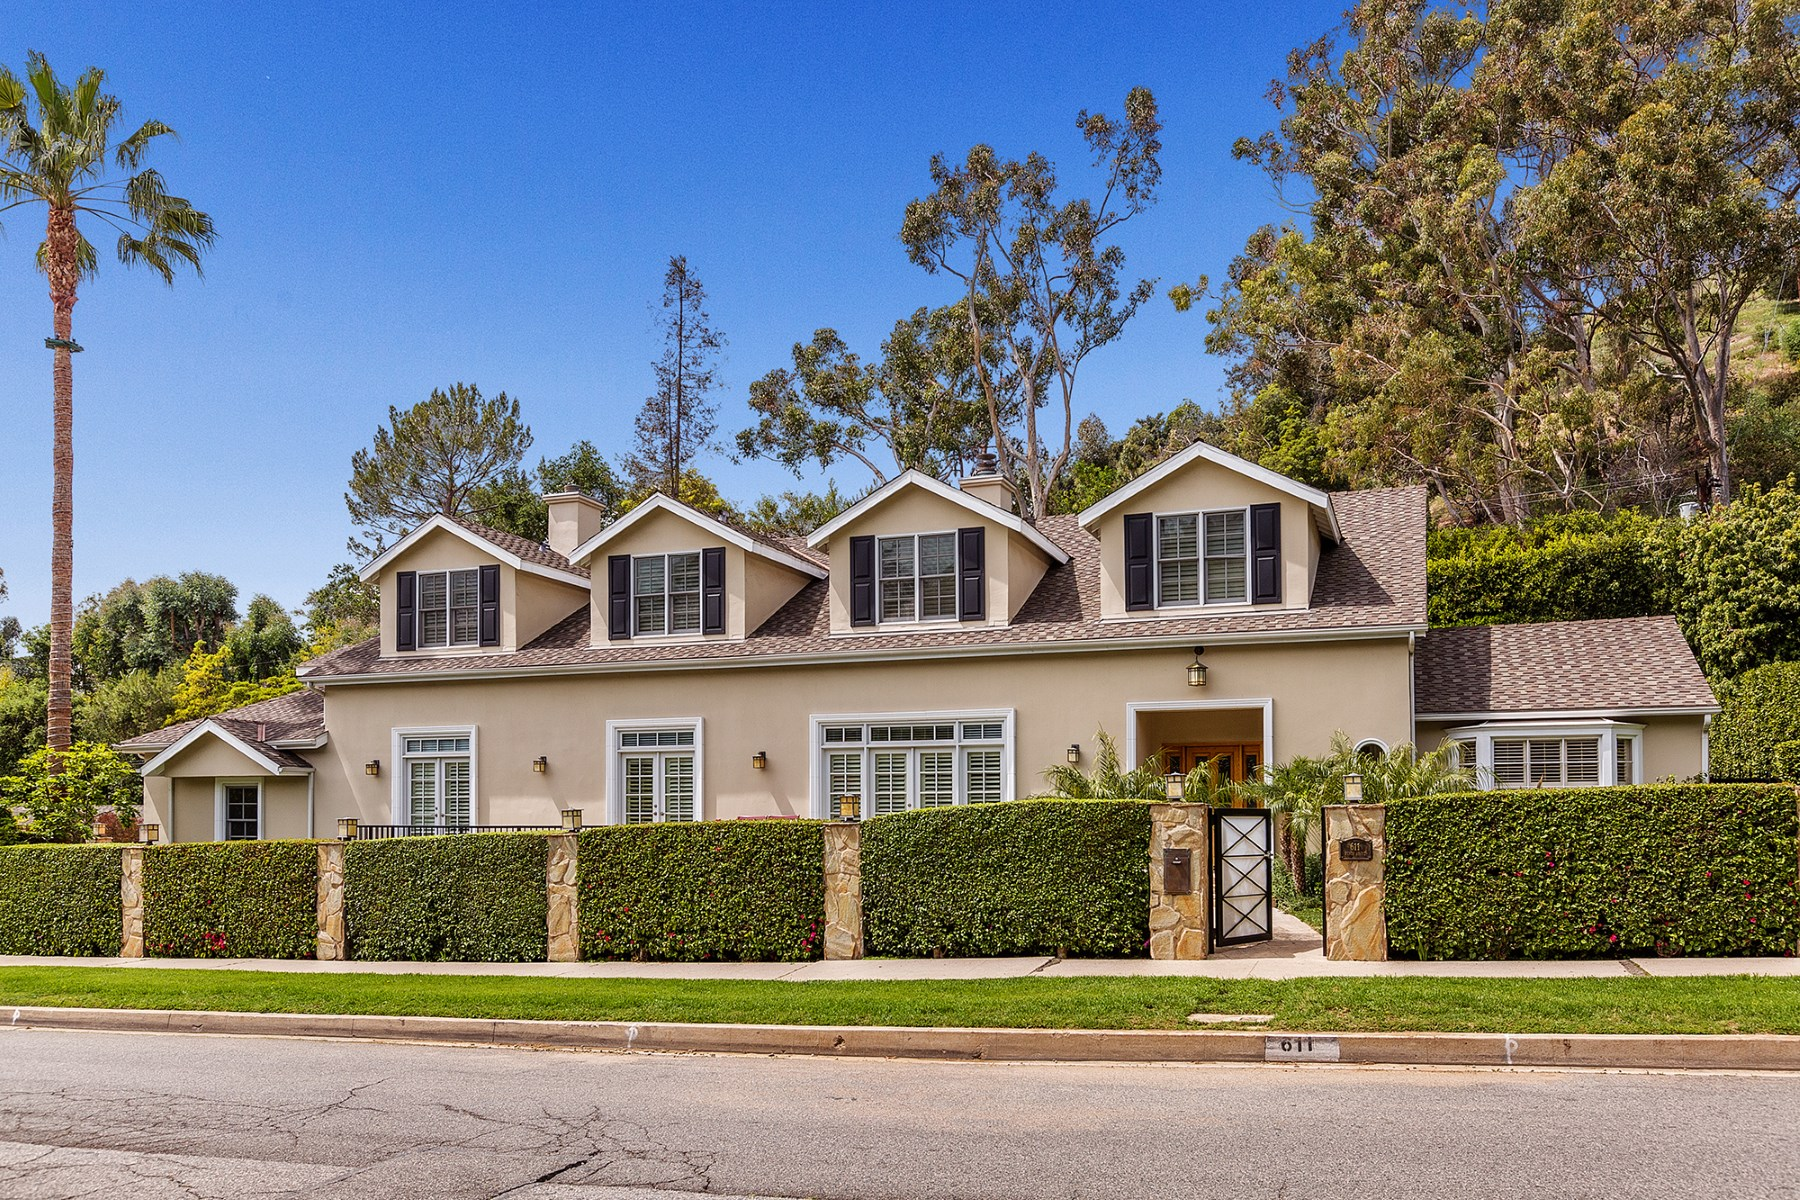 단독 가정 주택 용 매매 에 Exceptional Brentwood Home 611 North Bundy Drive Brentwood, Los Angeles, 캘리포니아, 90049 미국